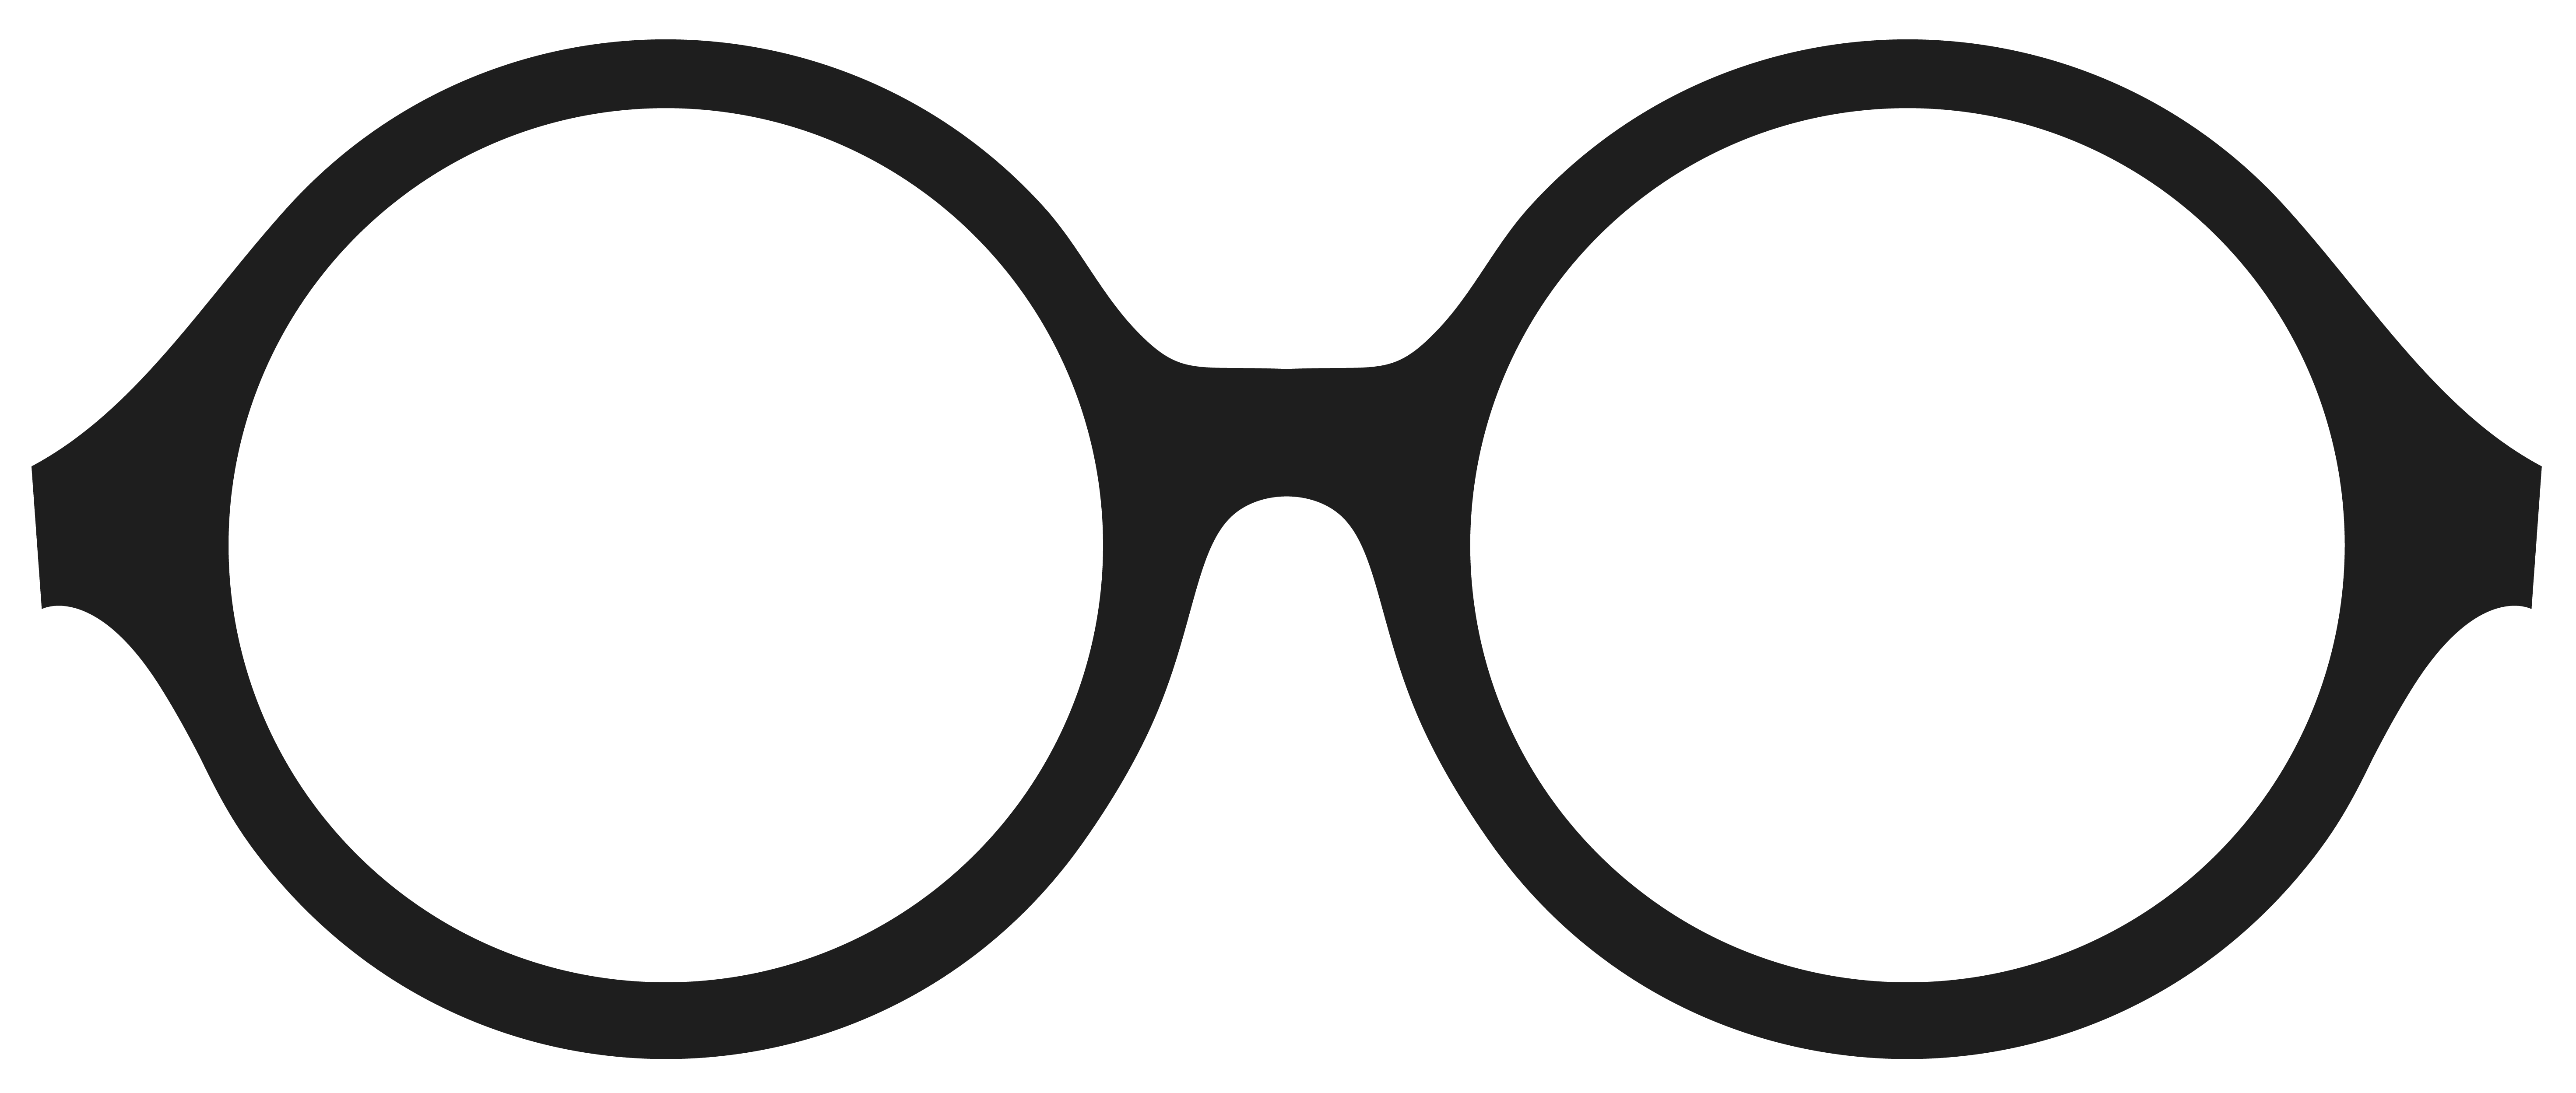 Eyeglasses clipart 70 glass. Glasses png images free